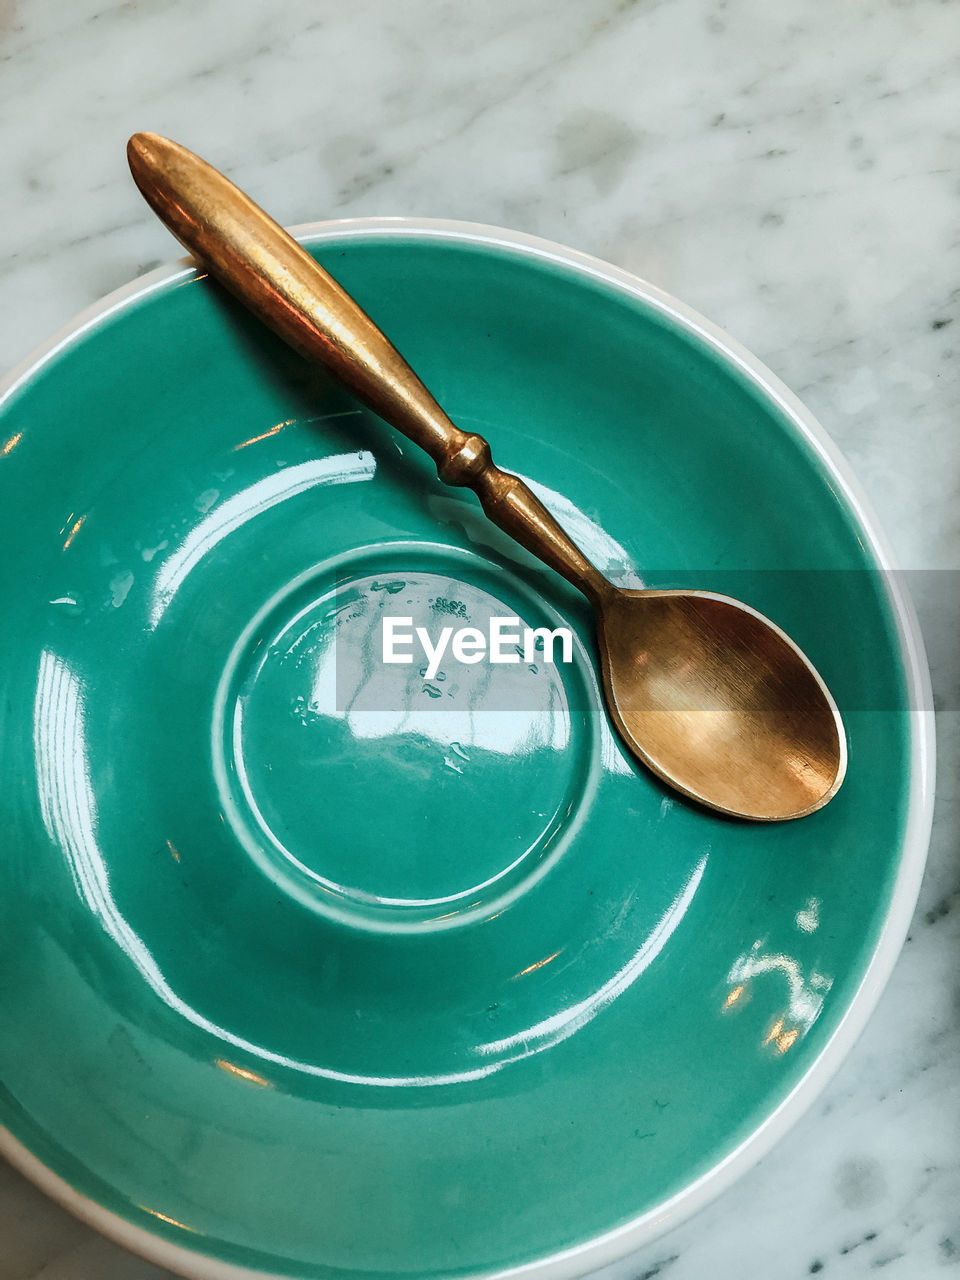 spoon, still life, high angle view, table, close-up, no people, eating utensil, kitchen utensil, bowl, green color, indoors, metal, glasses, fashion, focus on foreground, household equipment, plate, food and drink, sunglasses, steel, crockery, turquoise colored